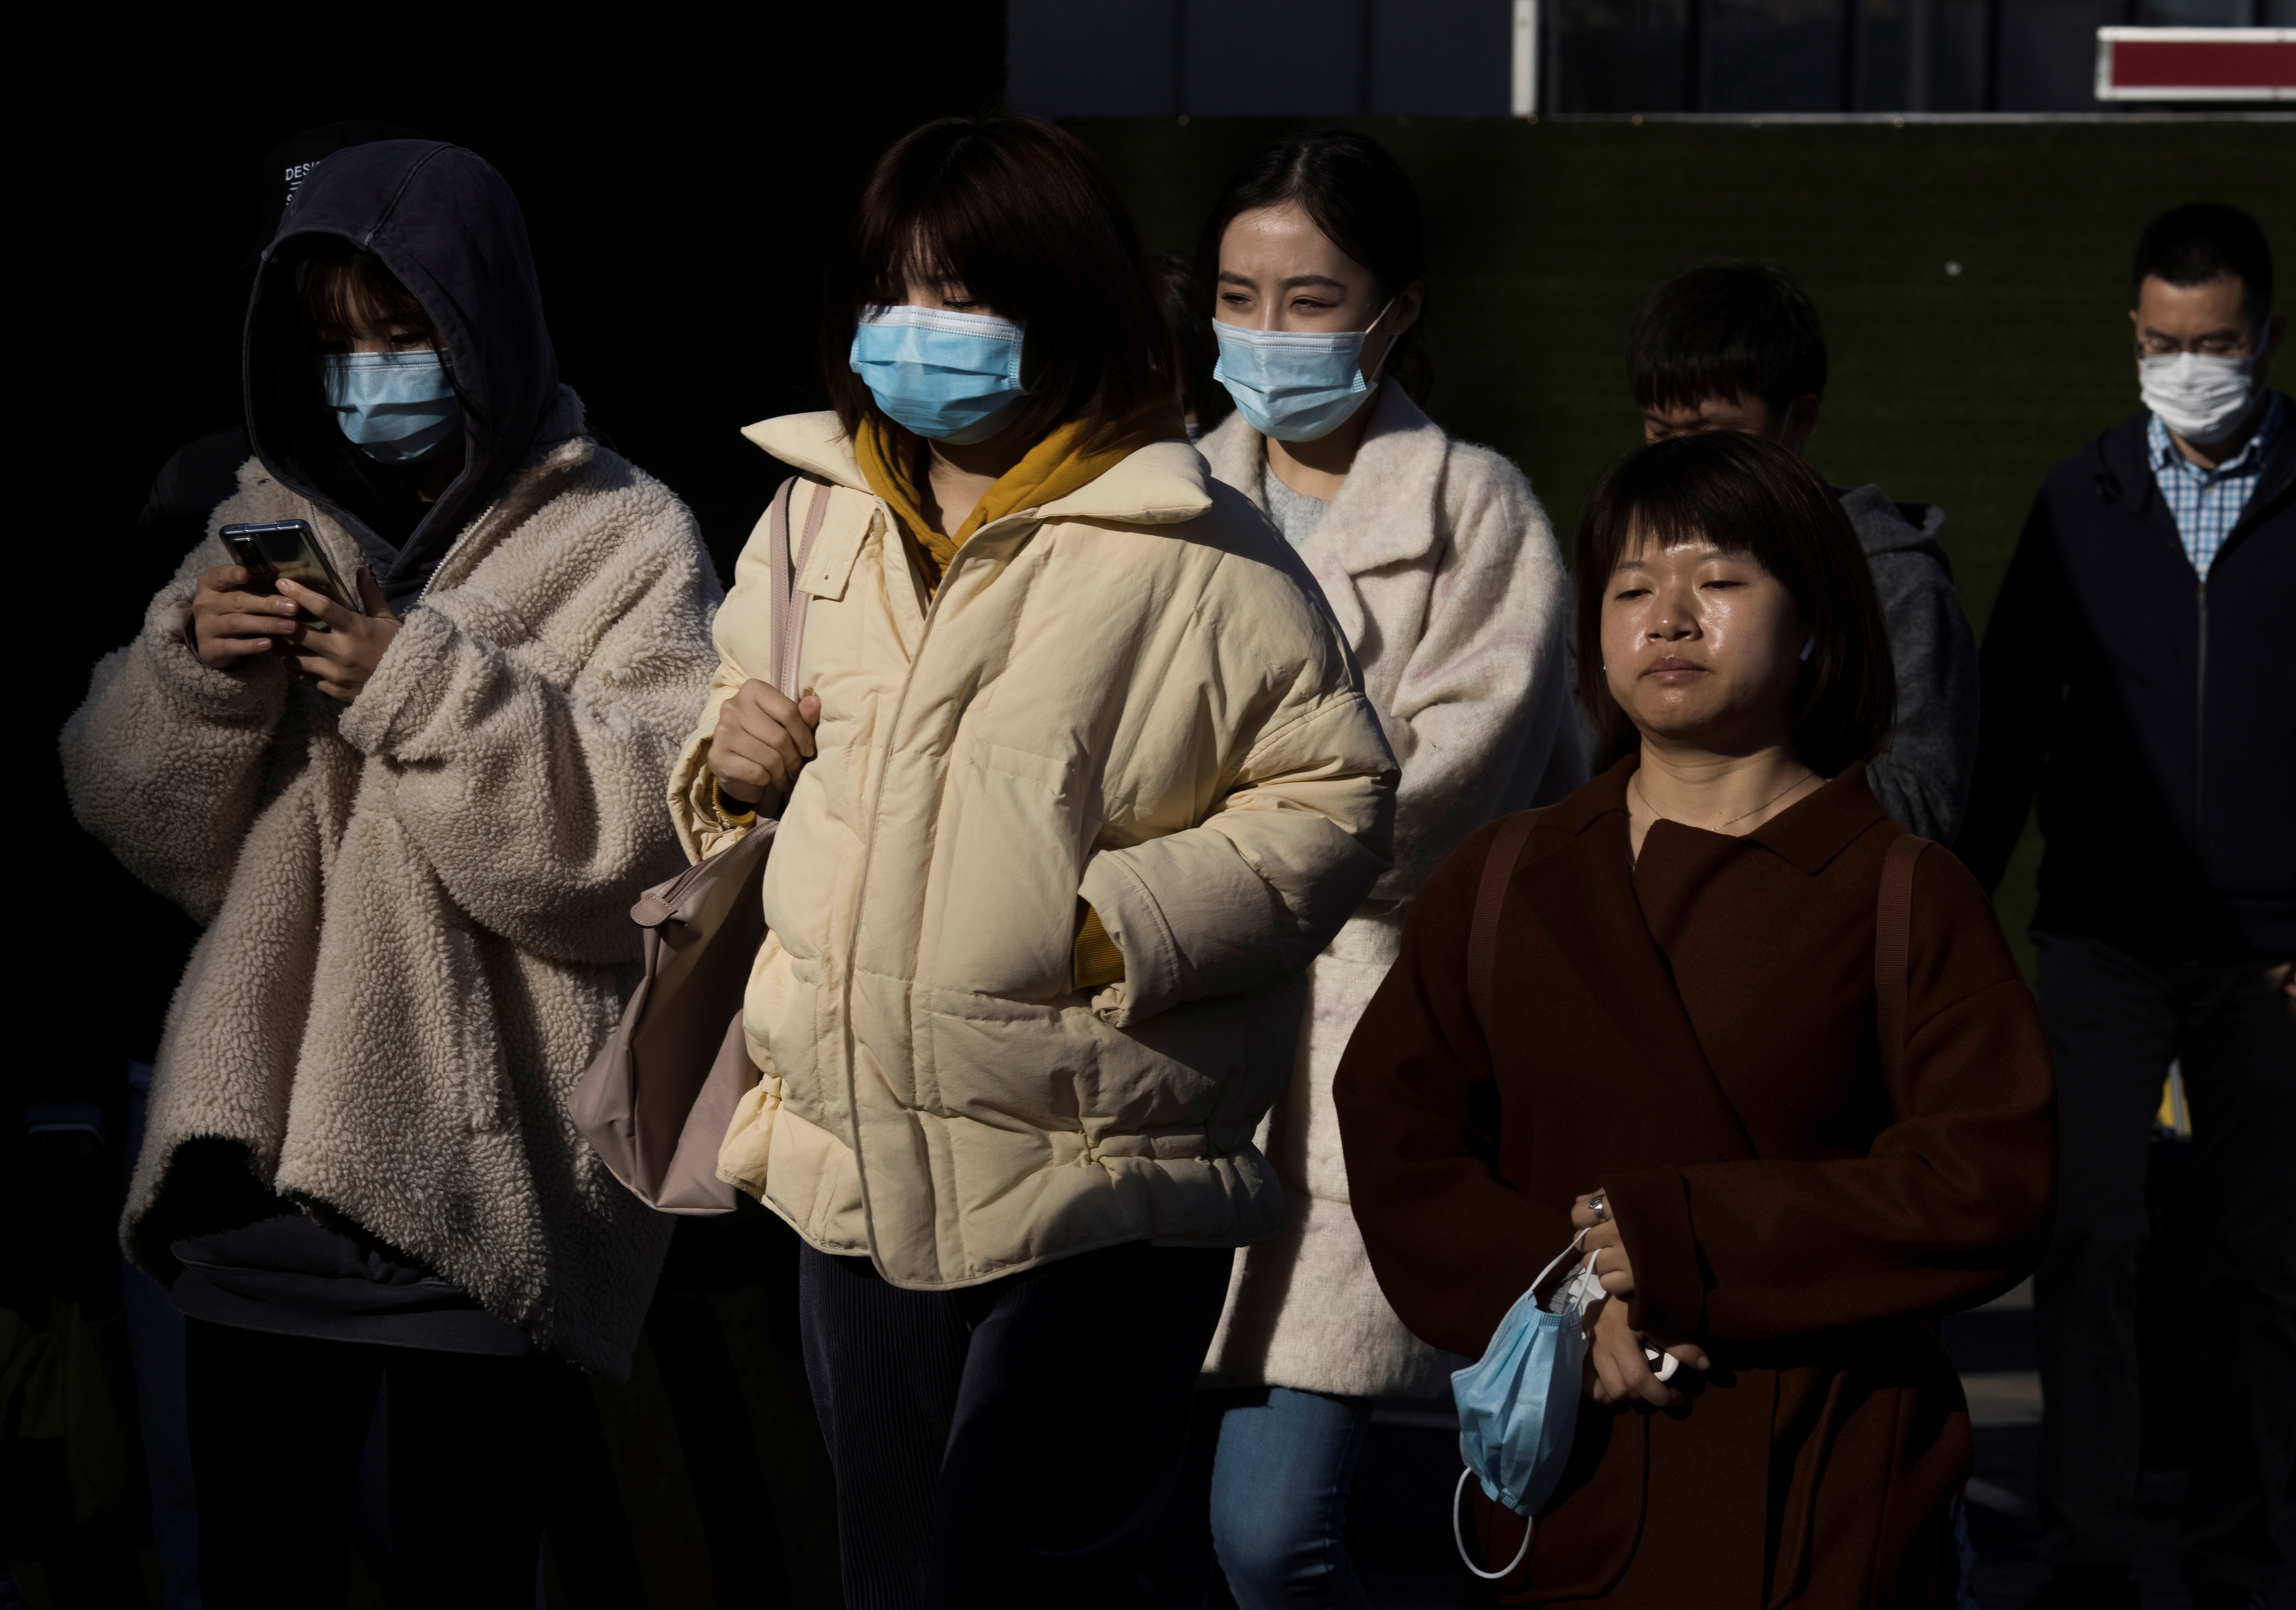 People walk in a street during morning rush hour following an outbreak of the coronavirus disease (COVID-19) in Beijing, China, November 3, 2020.   REUTERS/Thomas Peter